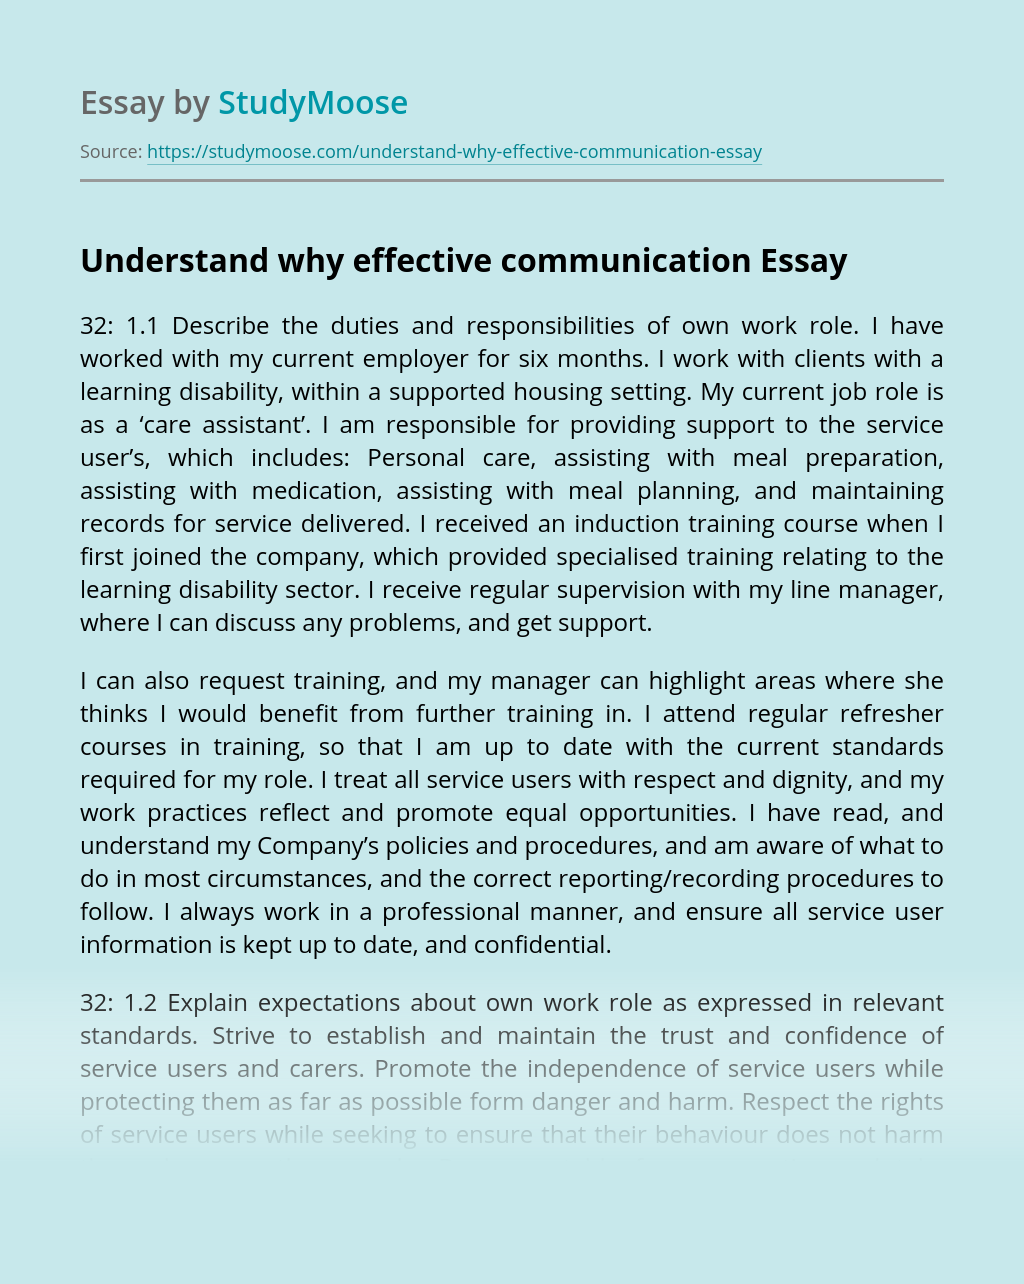 Understand why effective communication